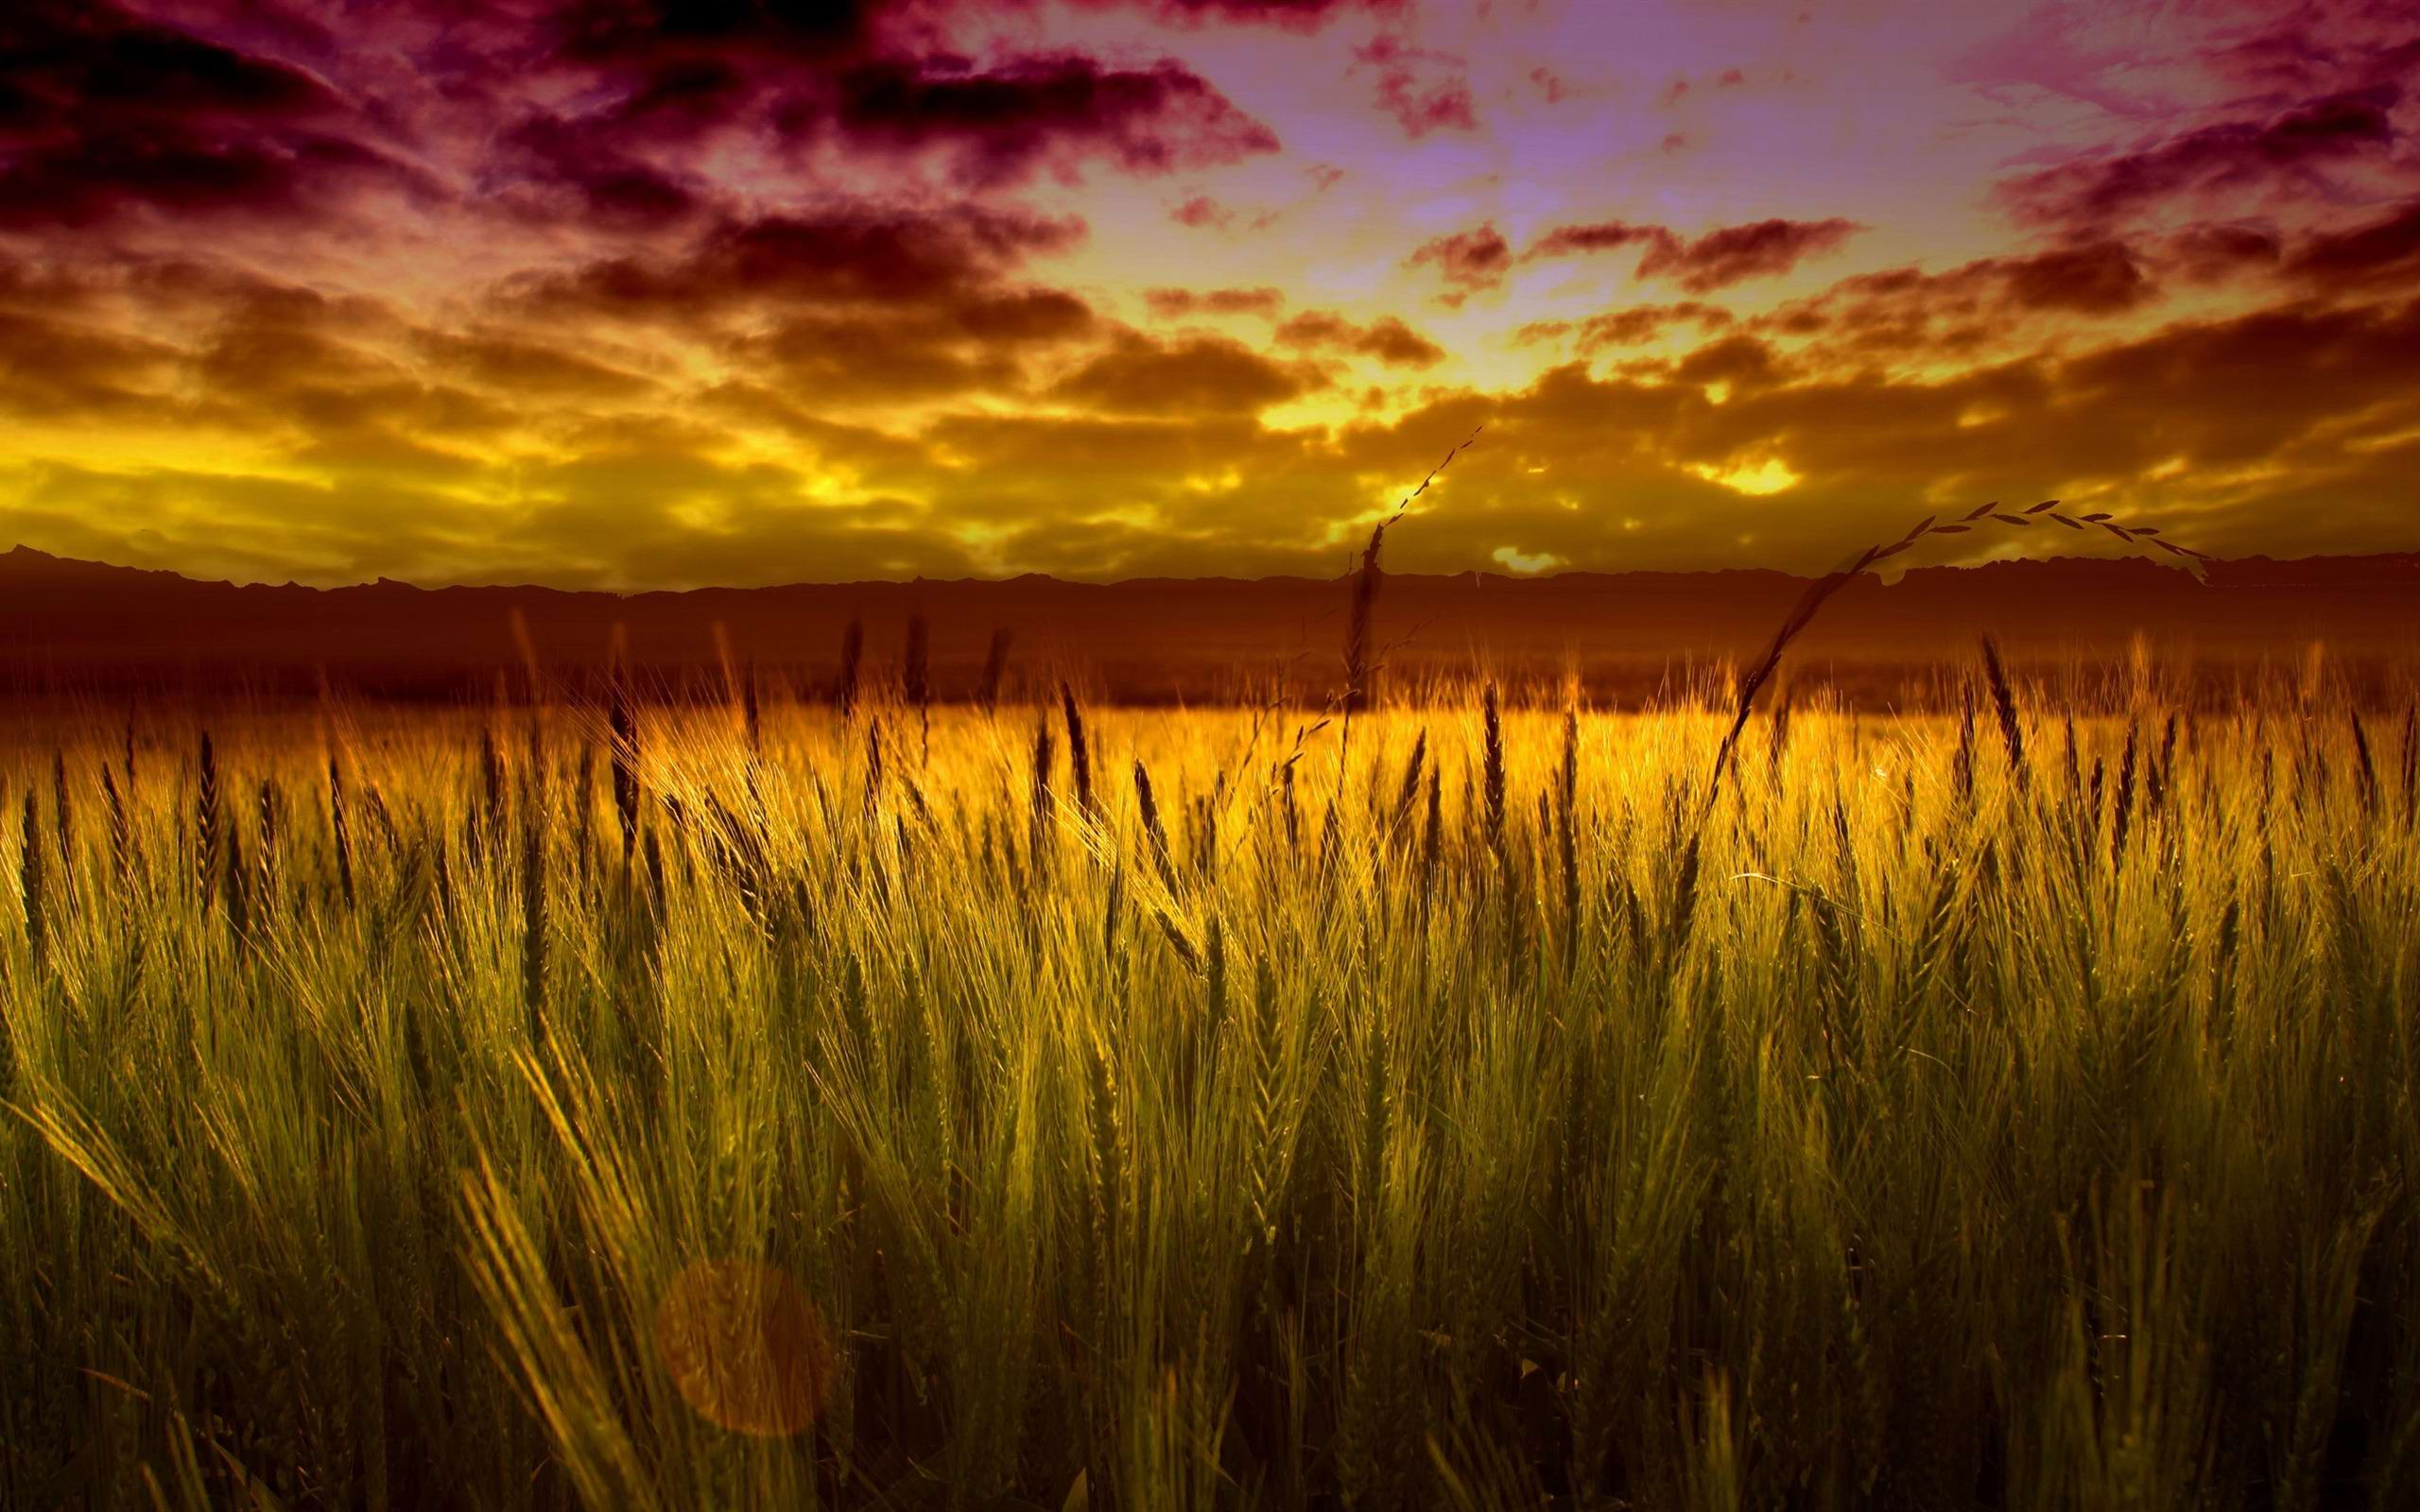 High Quality Images CollPection: Cool Wheat, by Loria Chenoweth